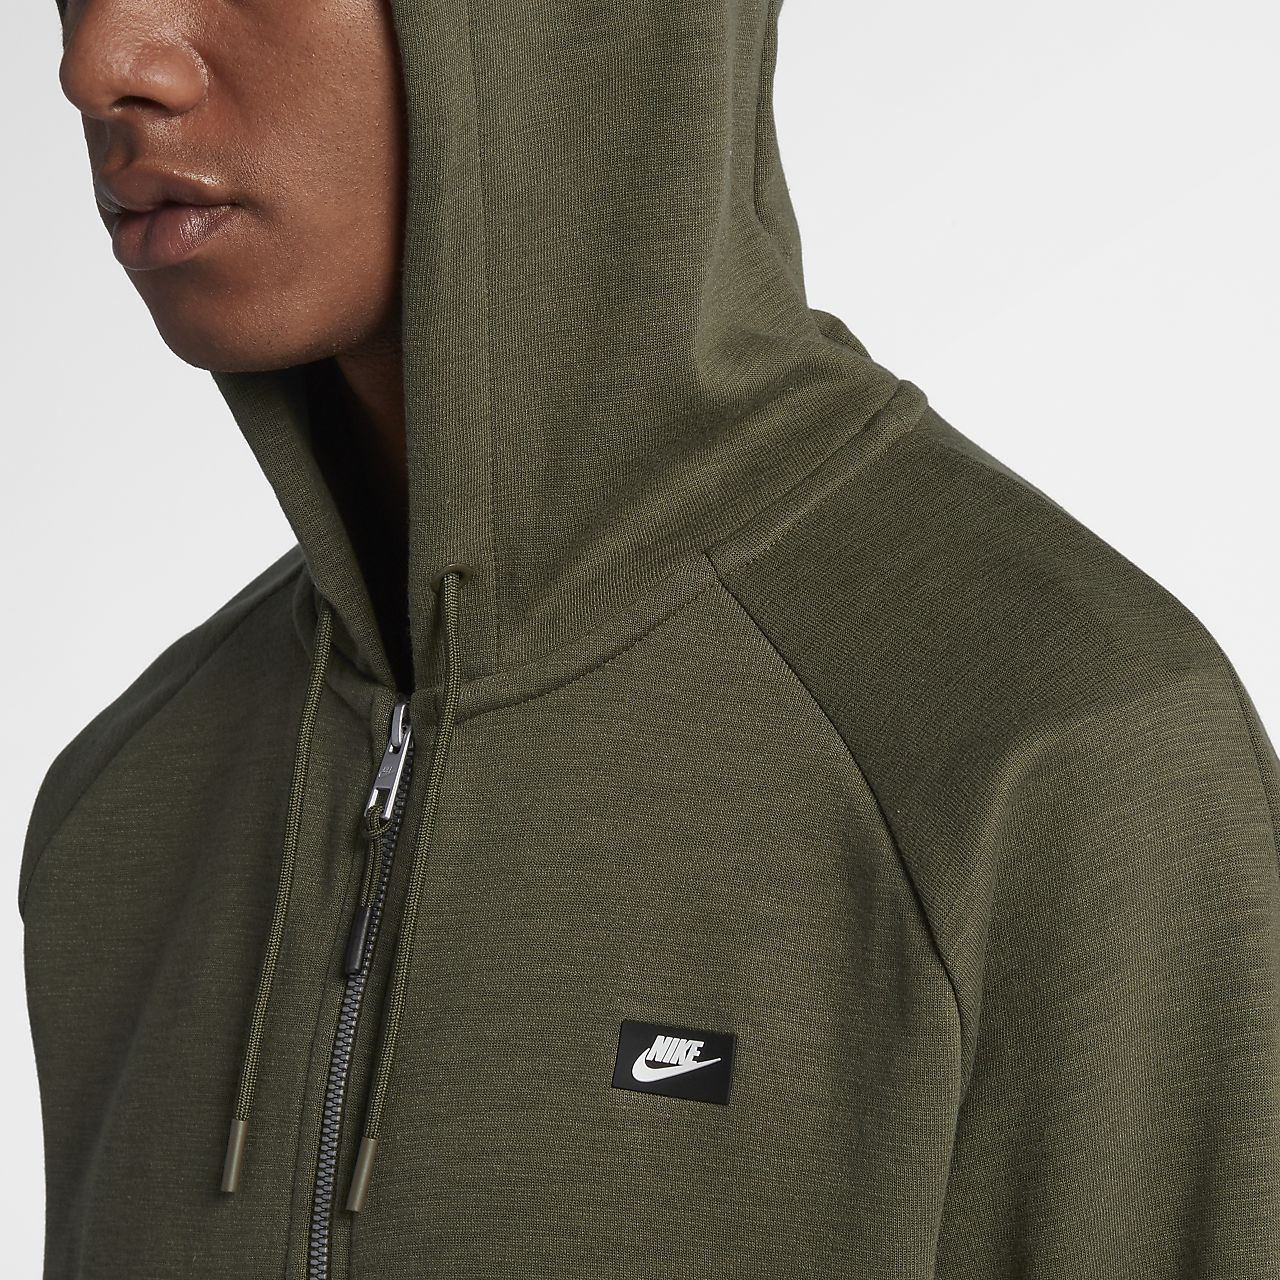 Nike Sportswear Optic Men's Full Zip Hoodie